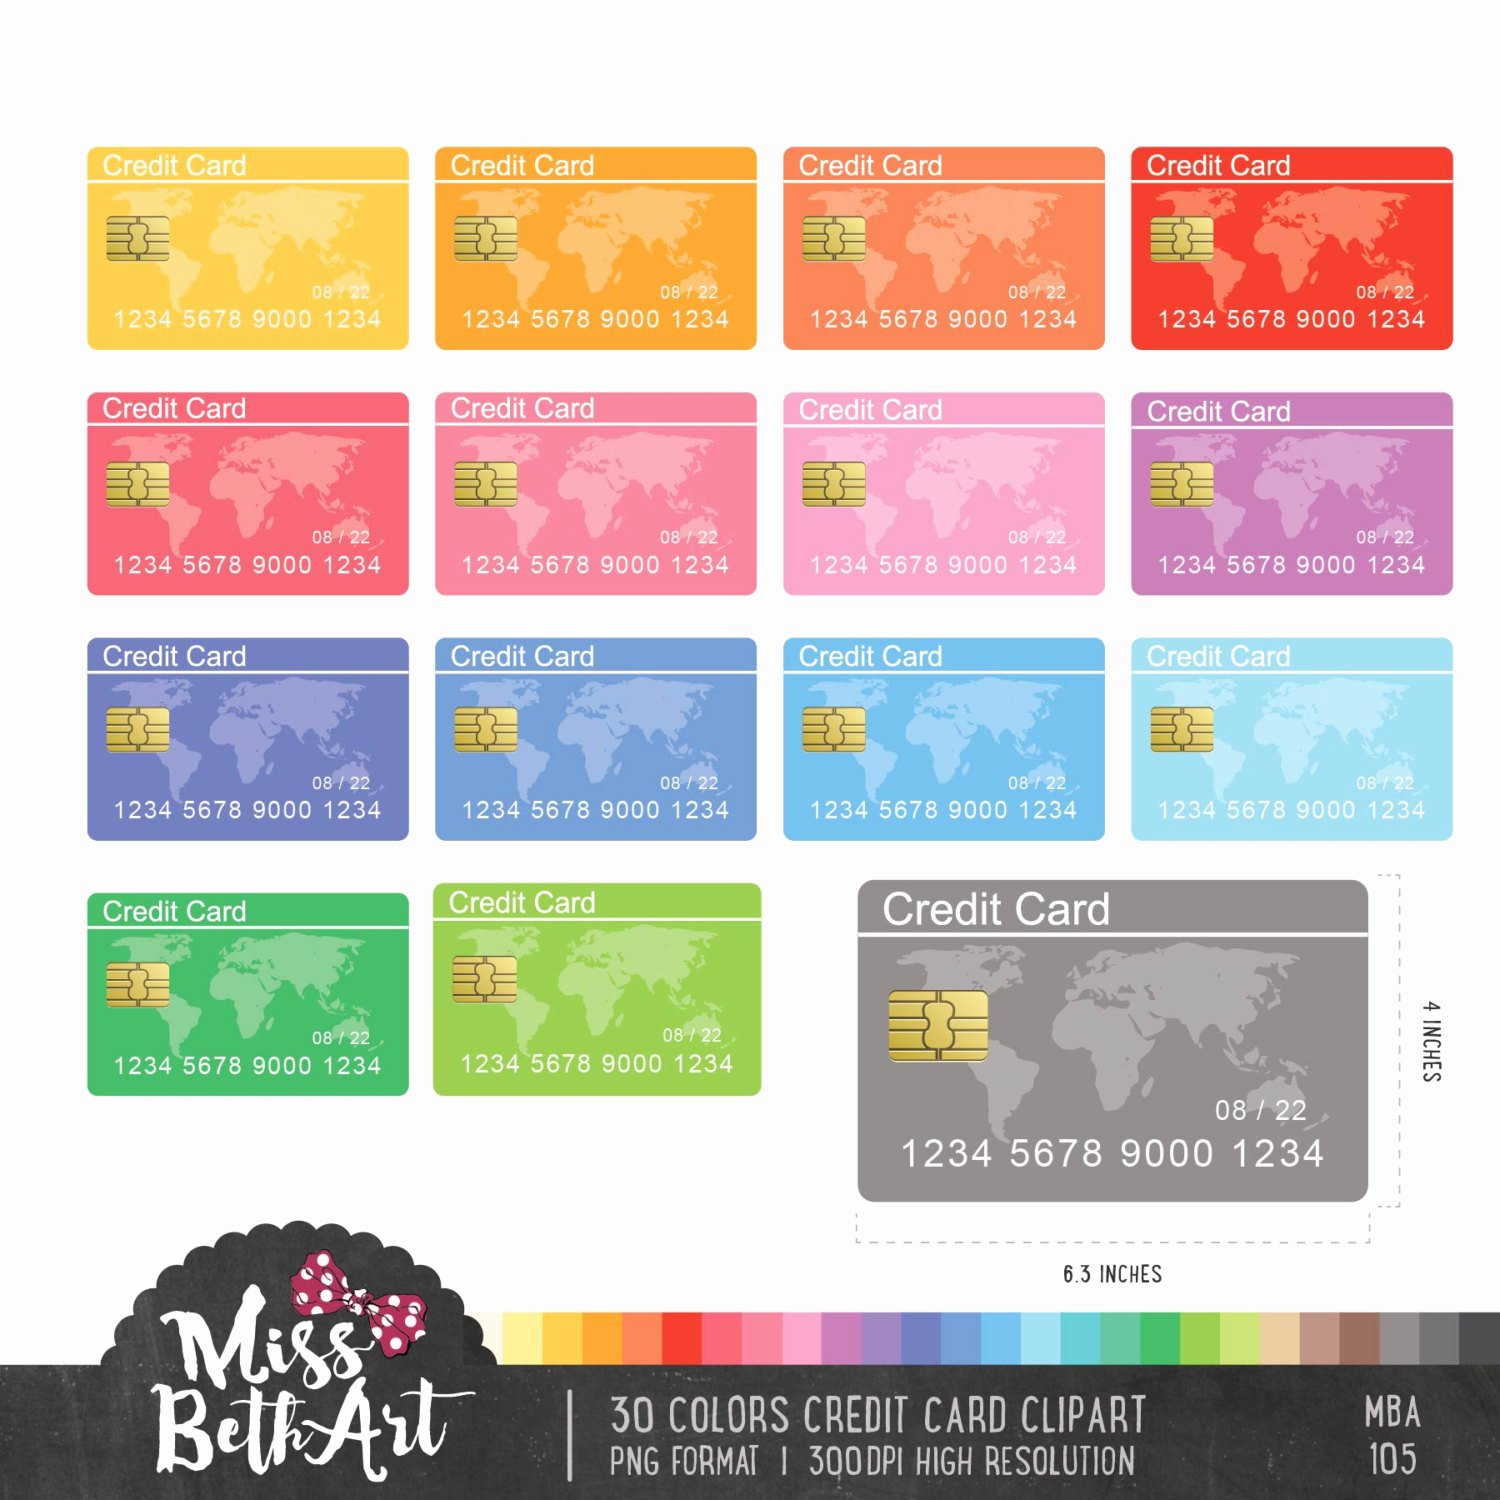 Discover Credit Card Designs Inspirational 30 Colors Credit Card Clipart Instant Download From Missbethart On Etsy Studio